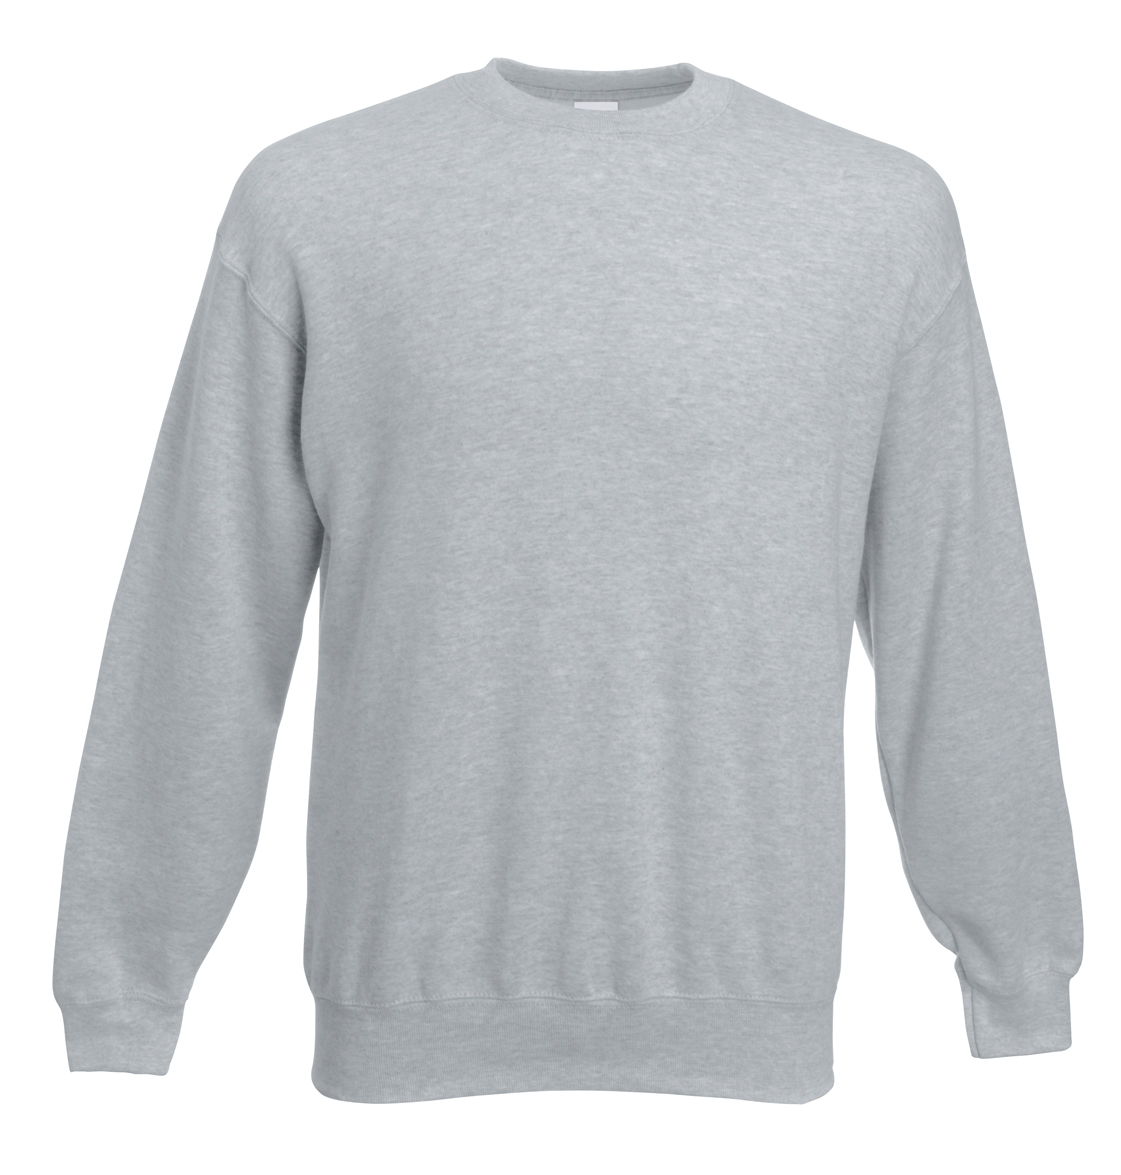 Fruit of the Loom Set-In Sweater 622020 Heather Grey